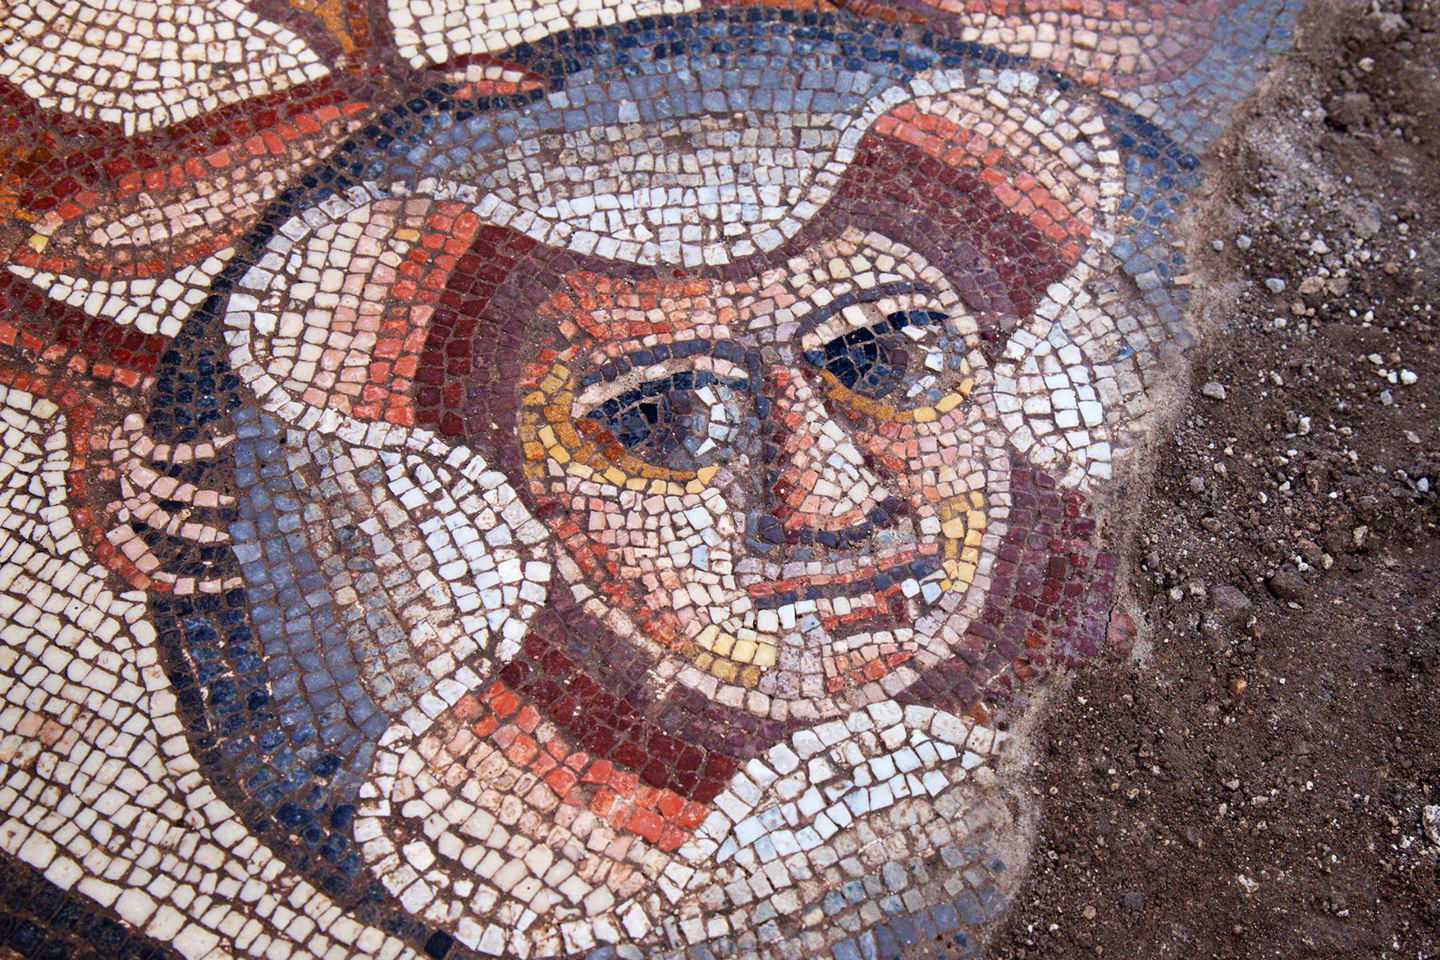 WEB-HUQOQ-ISRAEL-SINAGOGUE-MOSAIC-4-Jim Haberman-Huqoq Excavation Project